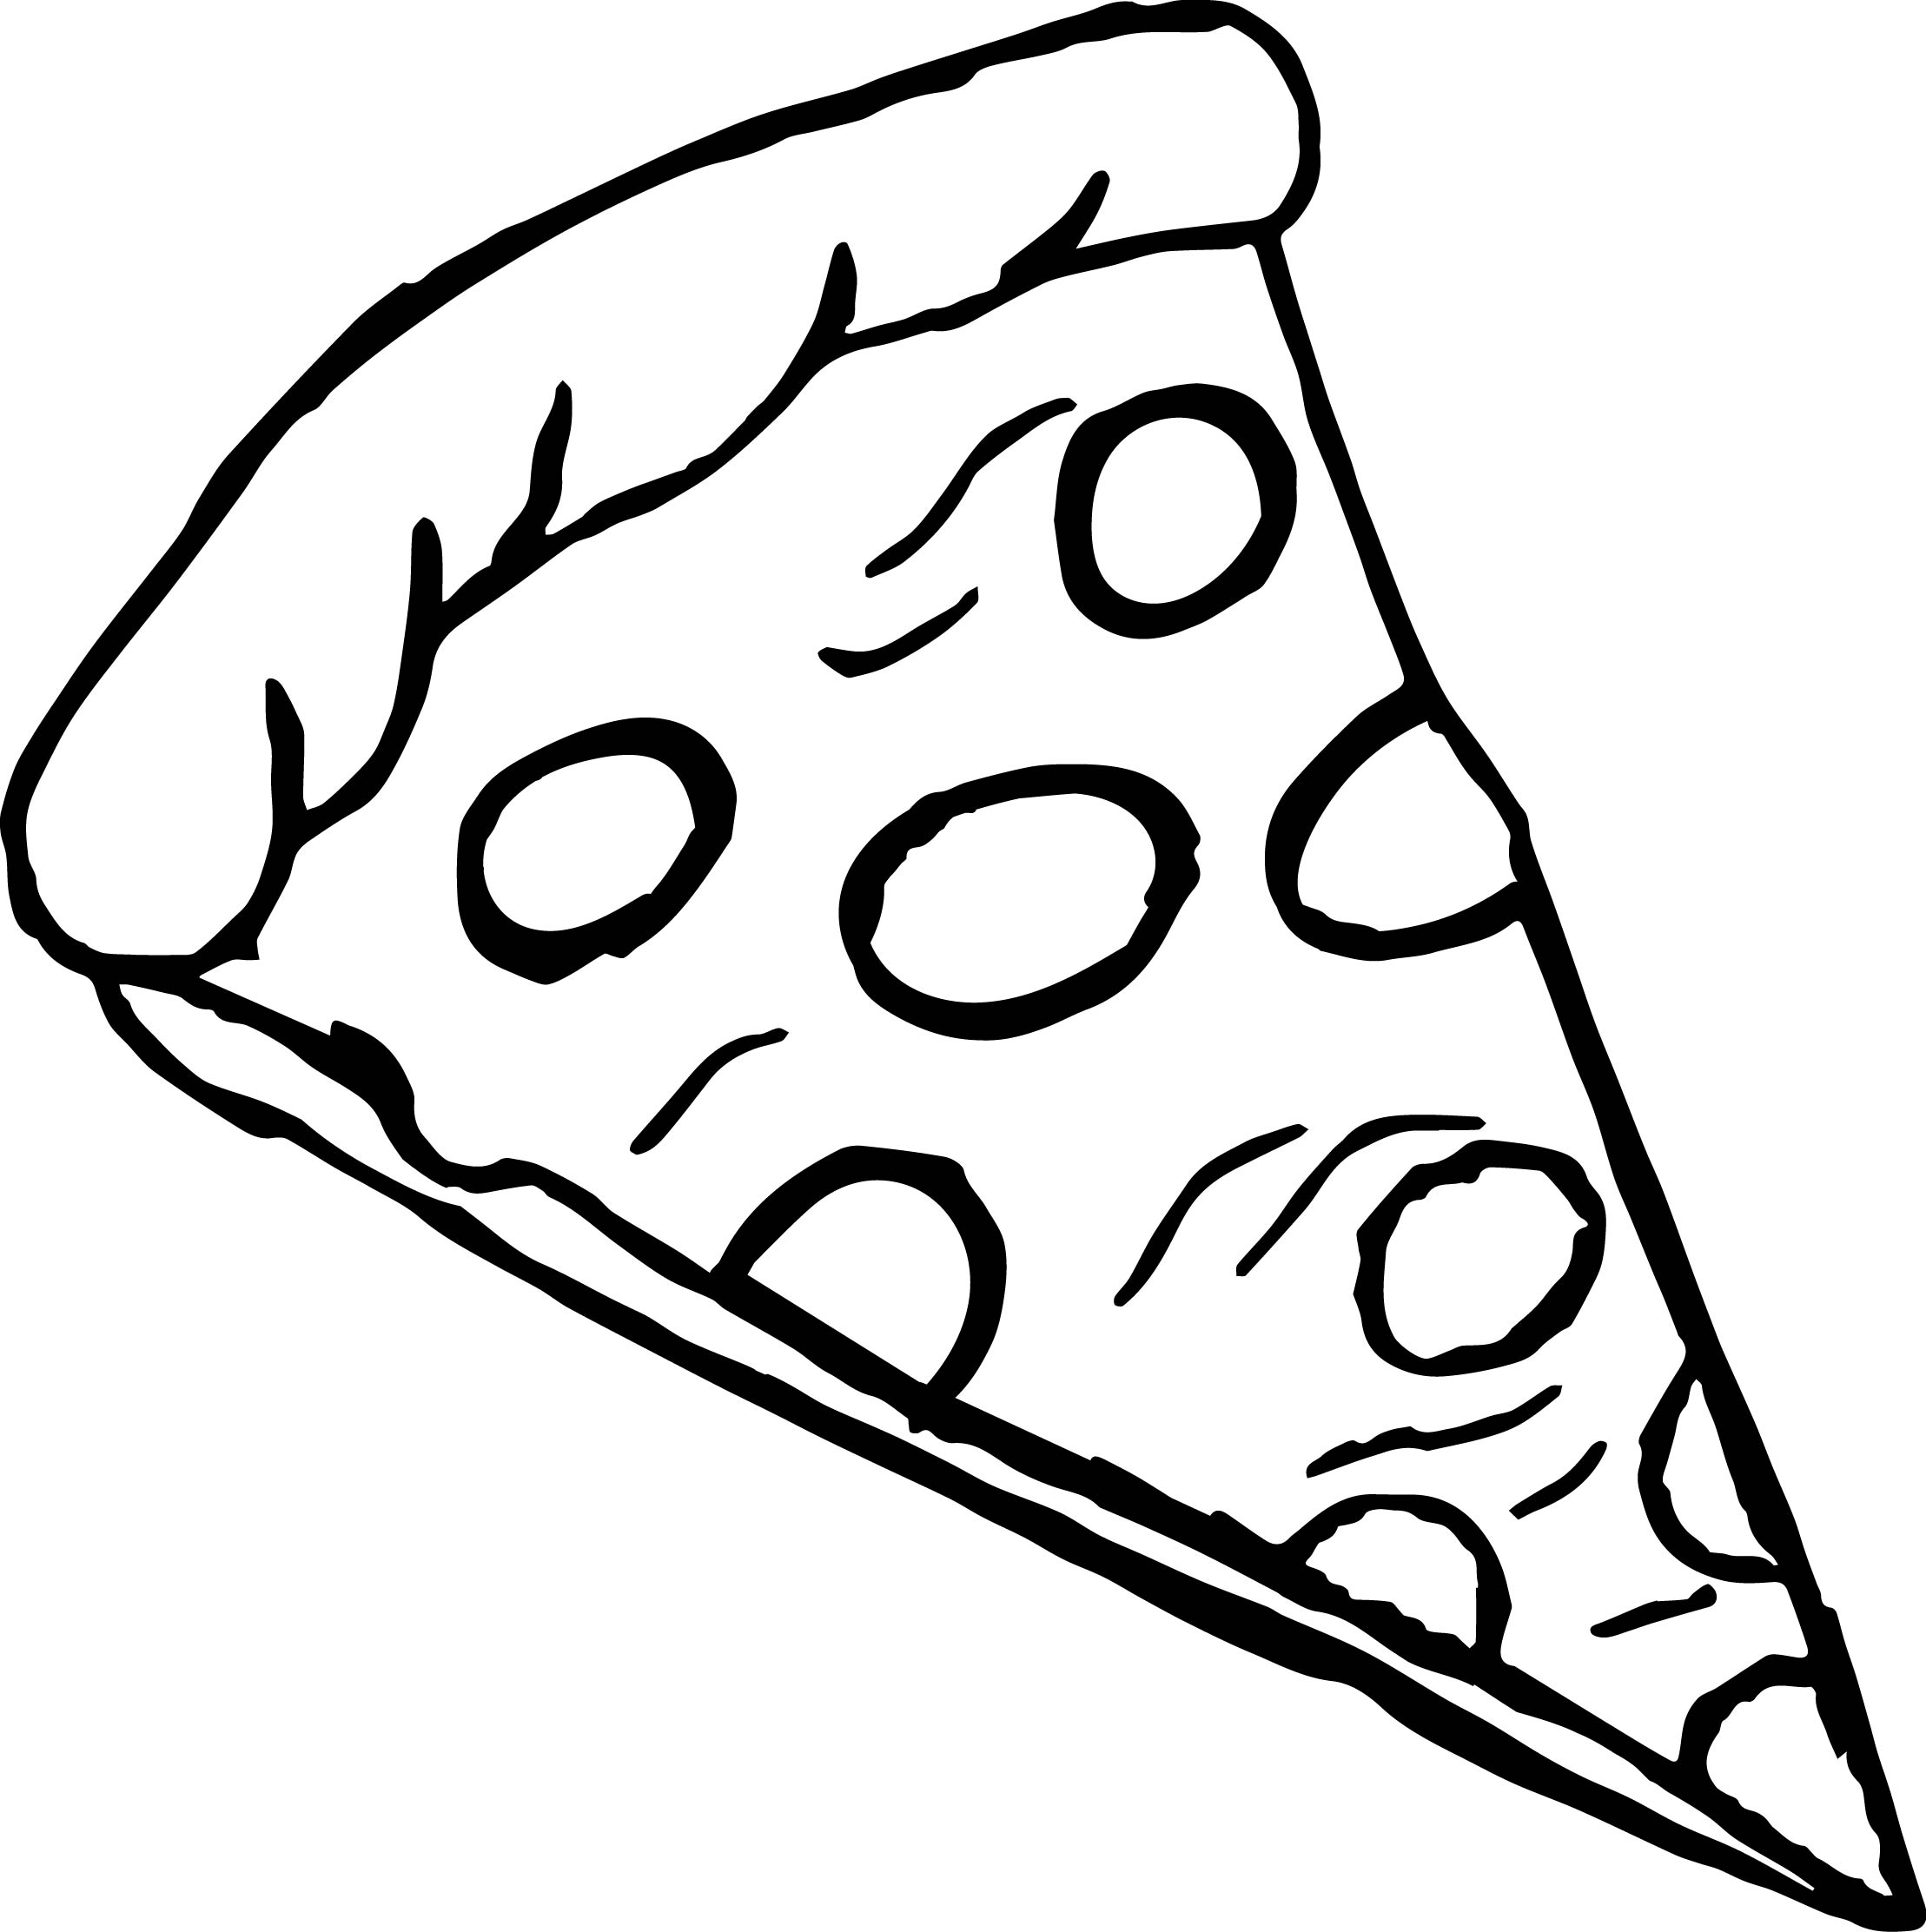 pepperoni pizza coloring page wecoloringpage